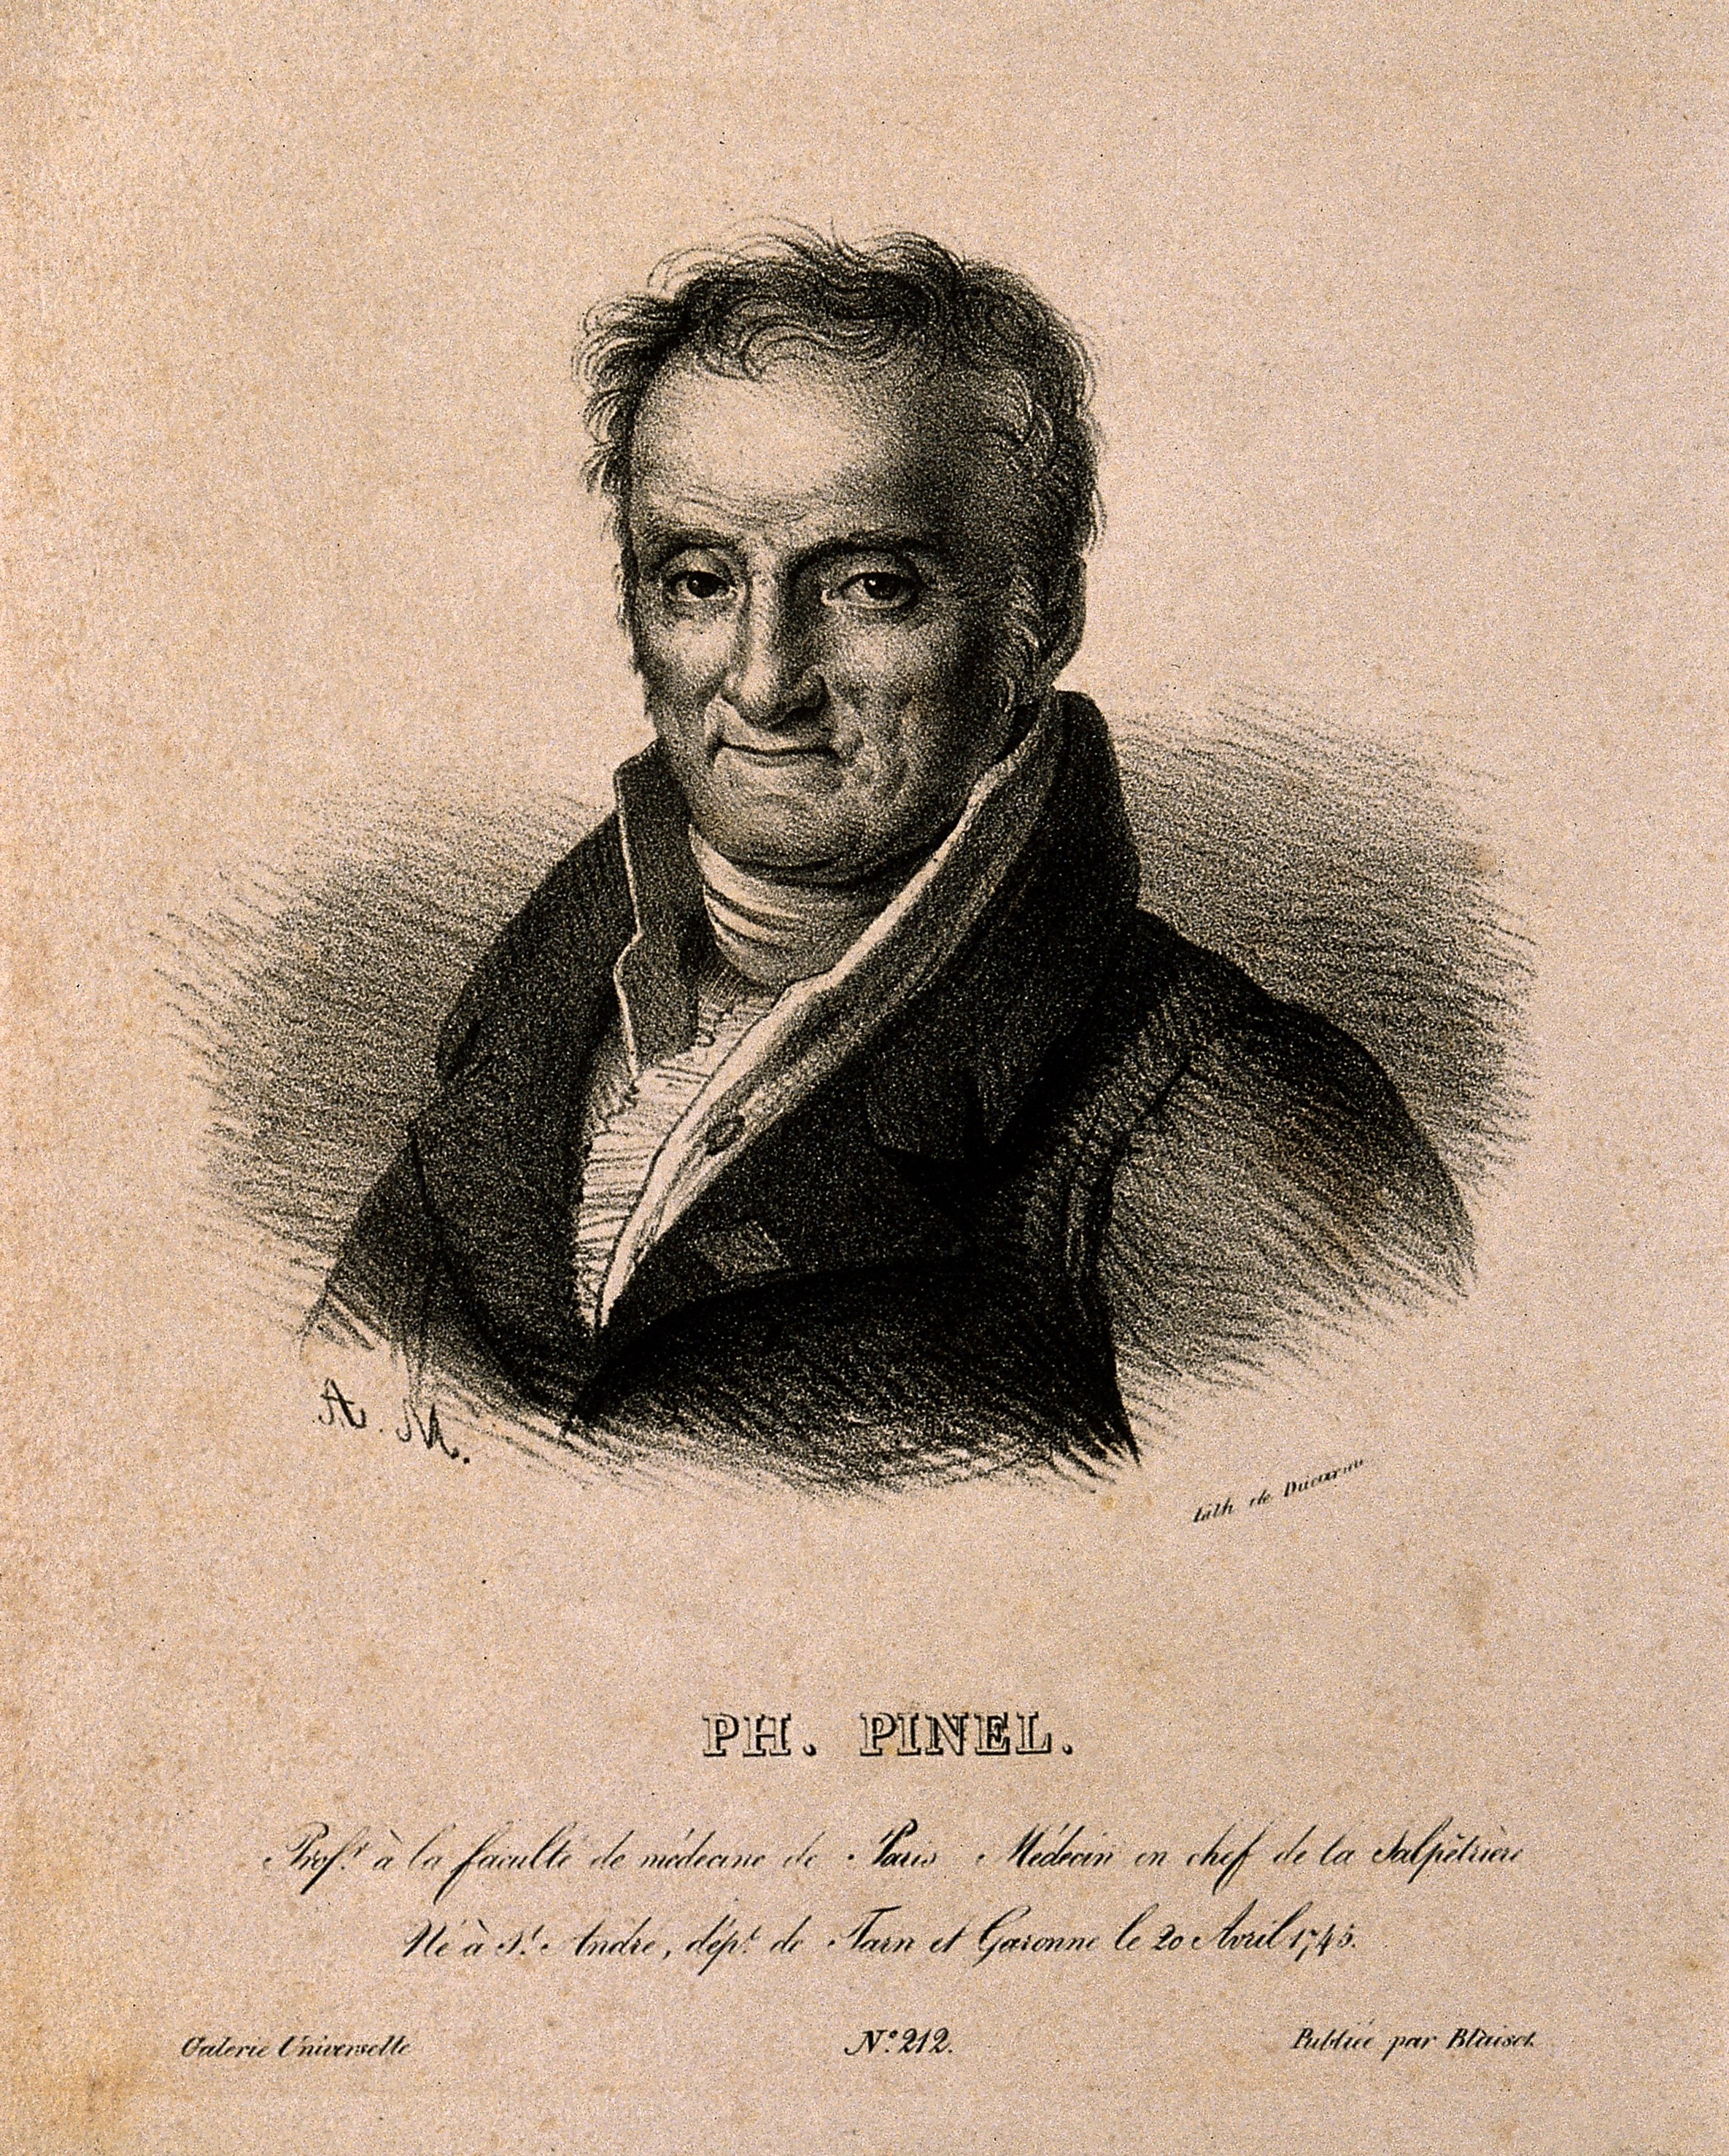 philippe pinel Lived 1745 - 1826 philippe pinel founded scientific psychiatry he ignored  previous theories about mental illness, relying on his own observations to guide.